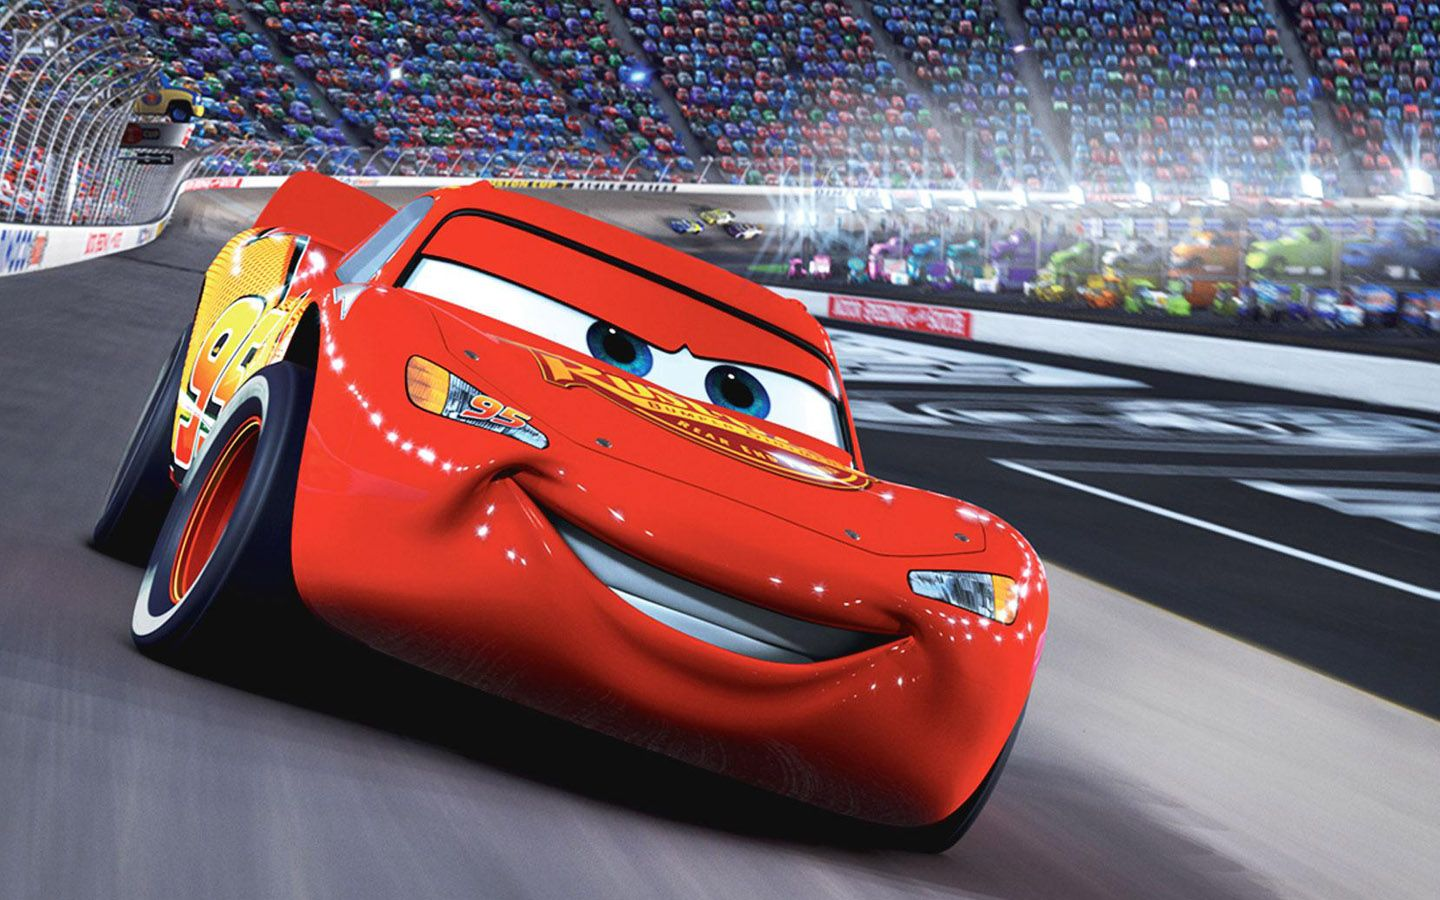 Download The Cars 2 Movie Hd Background For Android And Put It On Desktop Screen Or Use It As Facebo Imagenes De Cars Fiesta De Disney Cars Carros De Peliculas